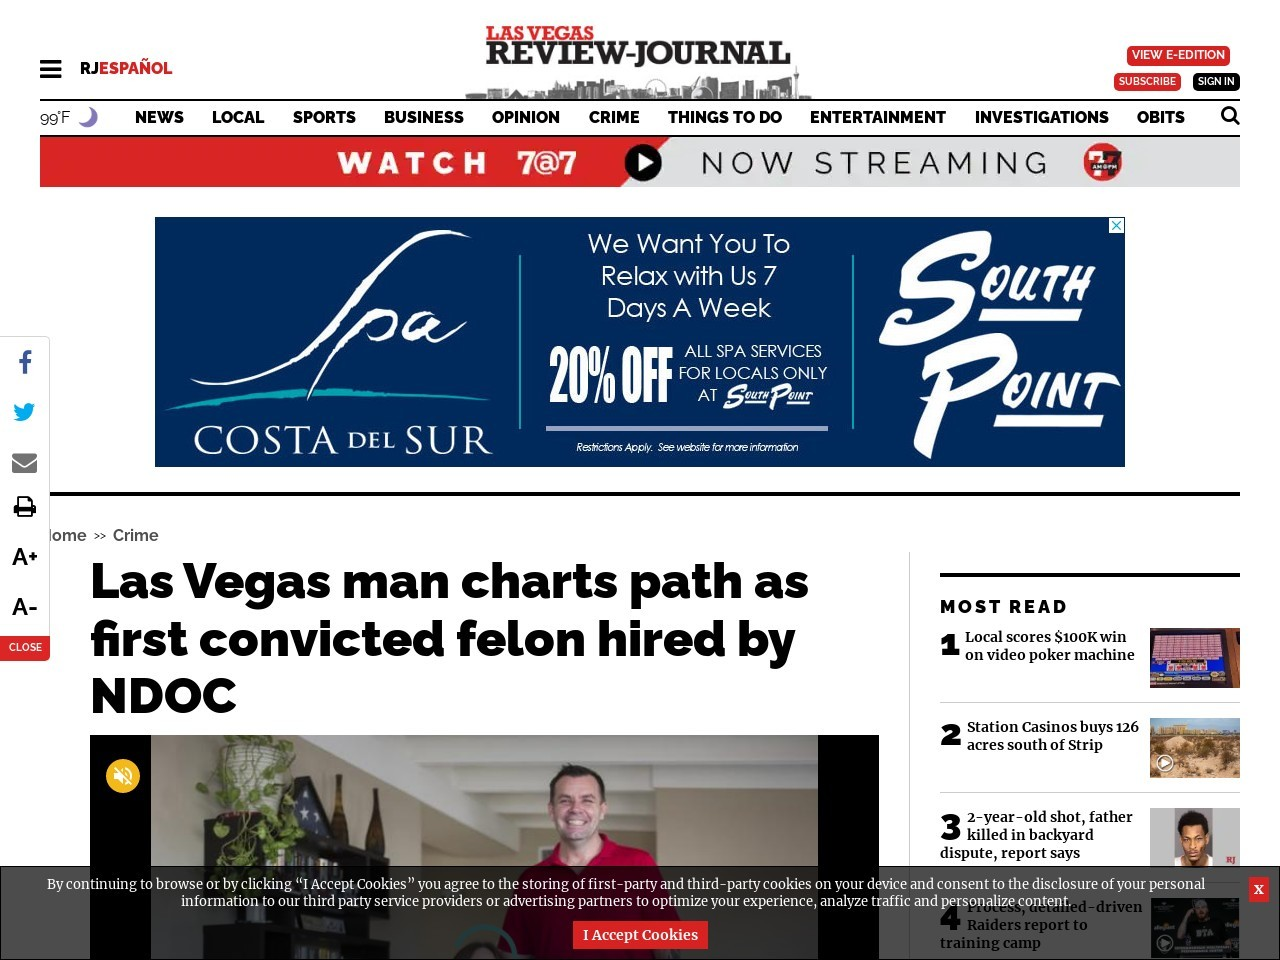 Las Vegas man charts path as first convicted felon hired by NDOC